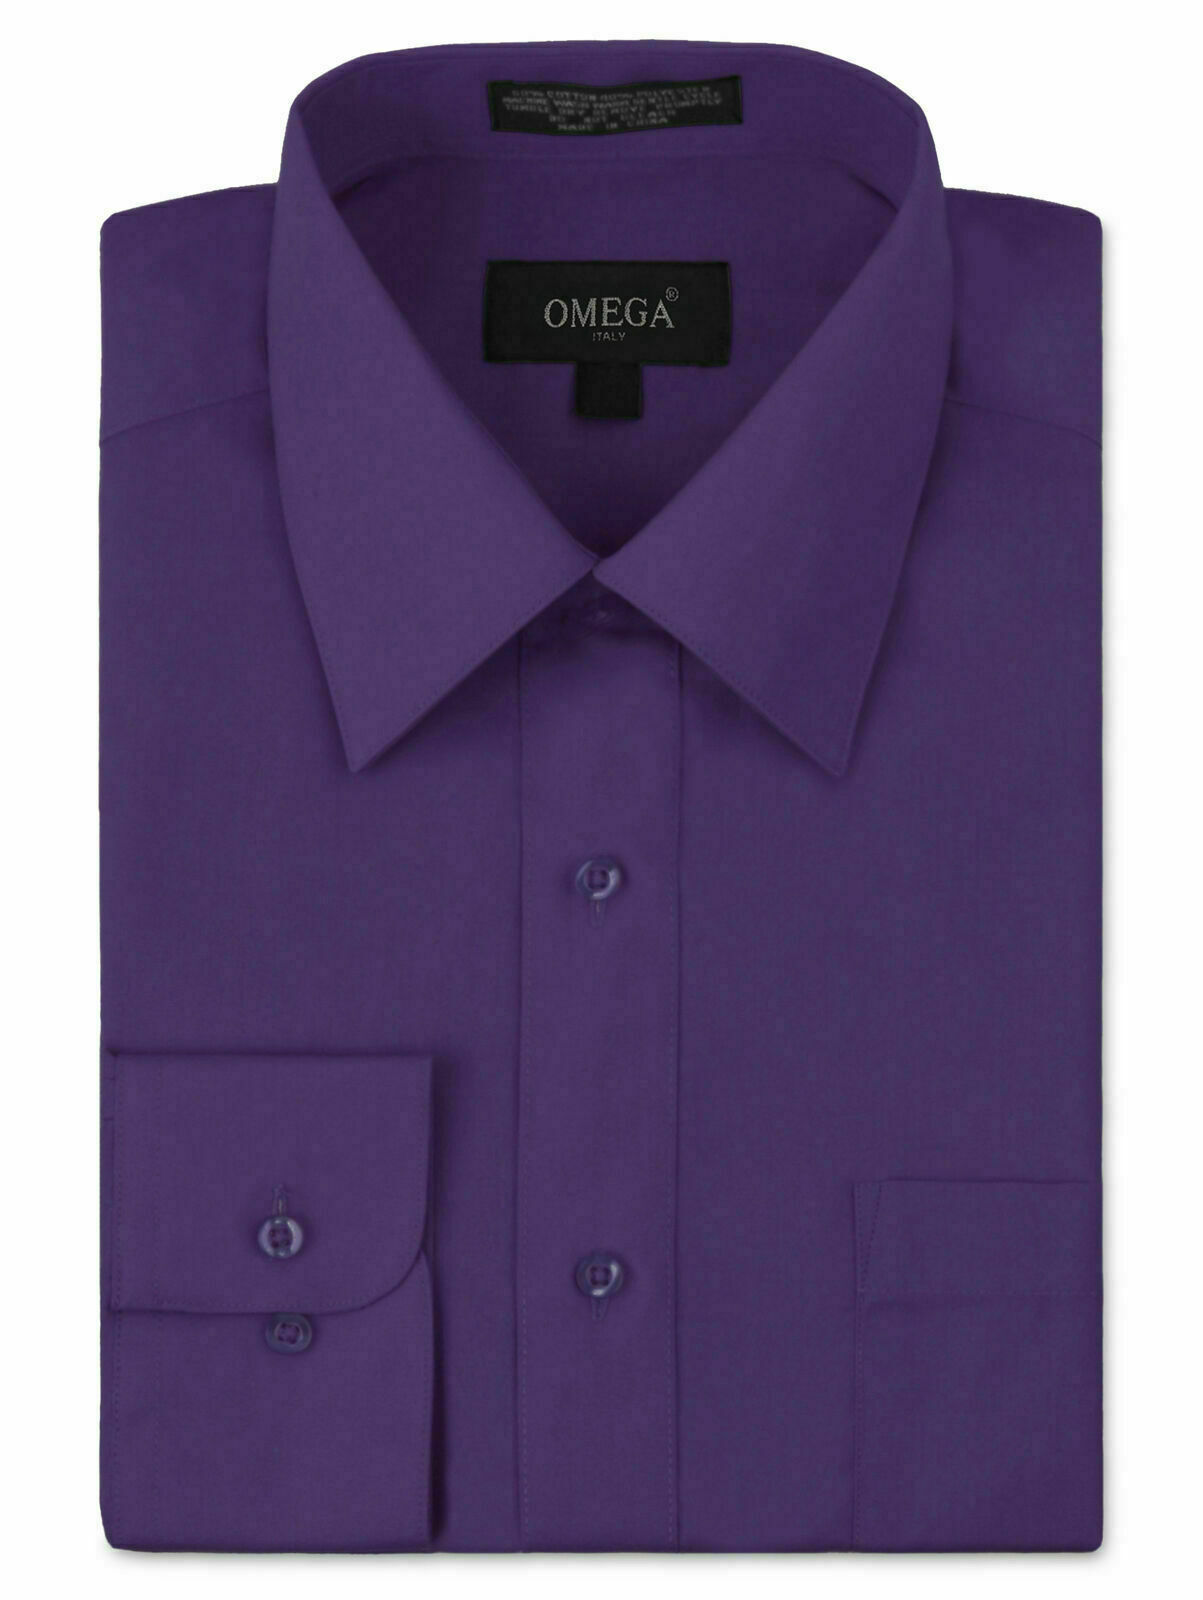 Omega Italy Men's Long Sleeve Solid Barrel Cuff Purple Button Up Dress Shirt 2XL